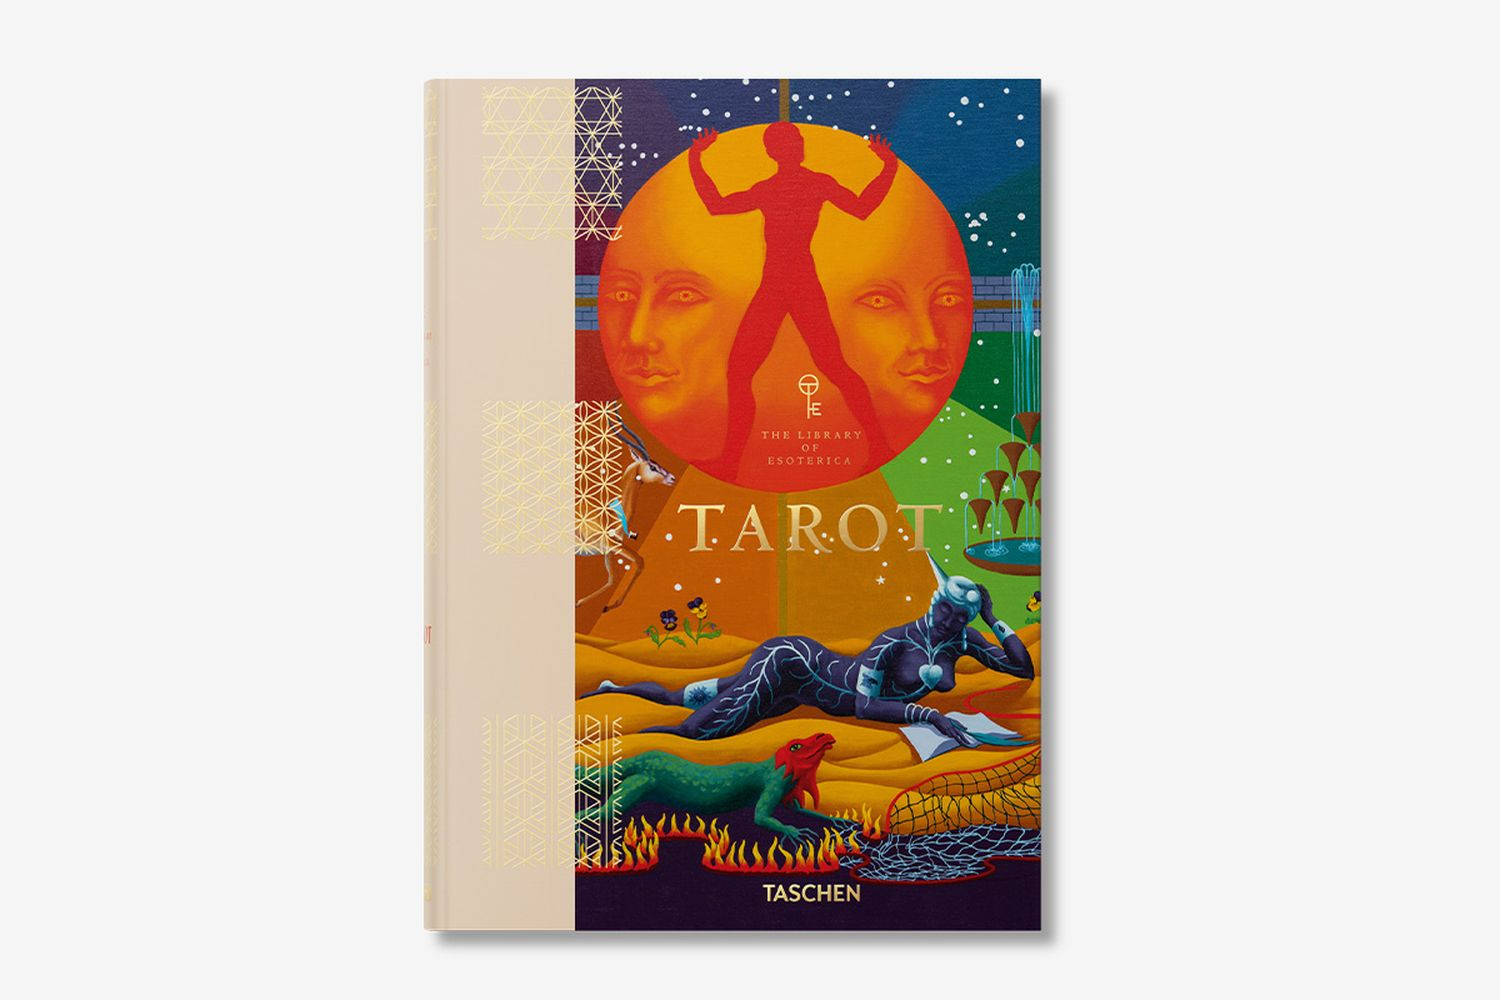 Tarot: The Library of Esoterica